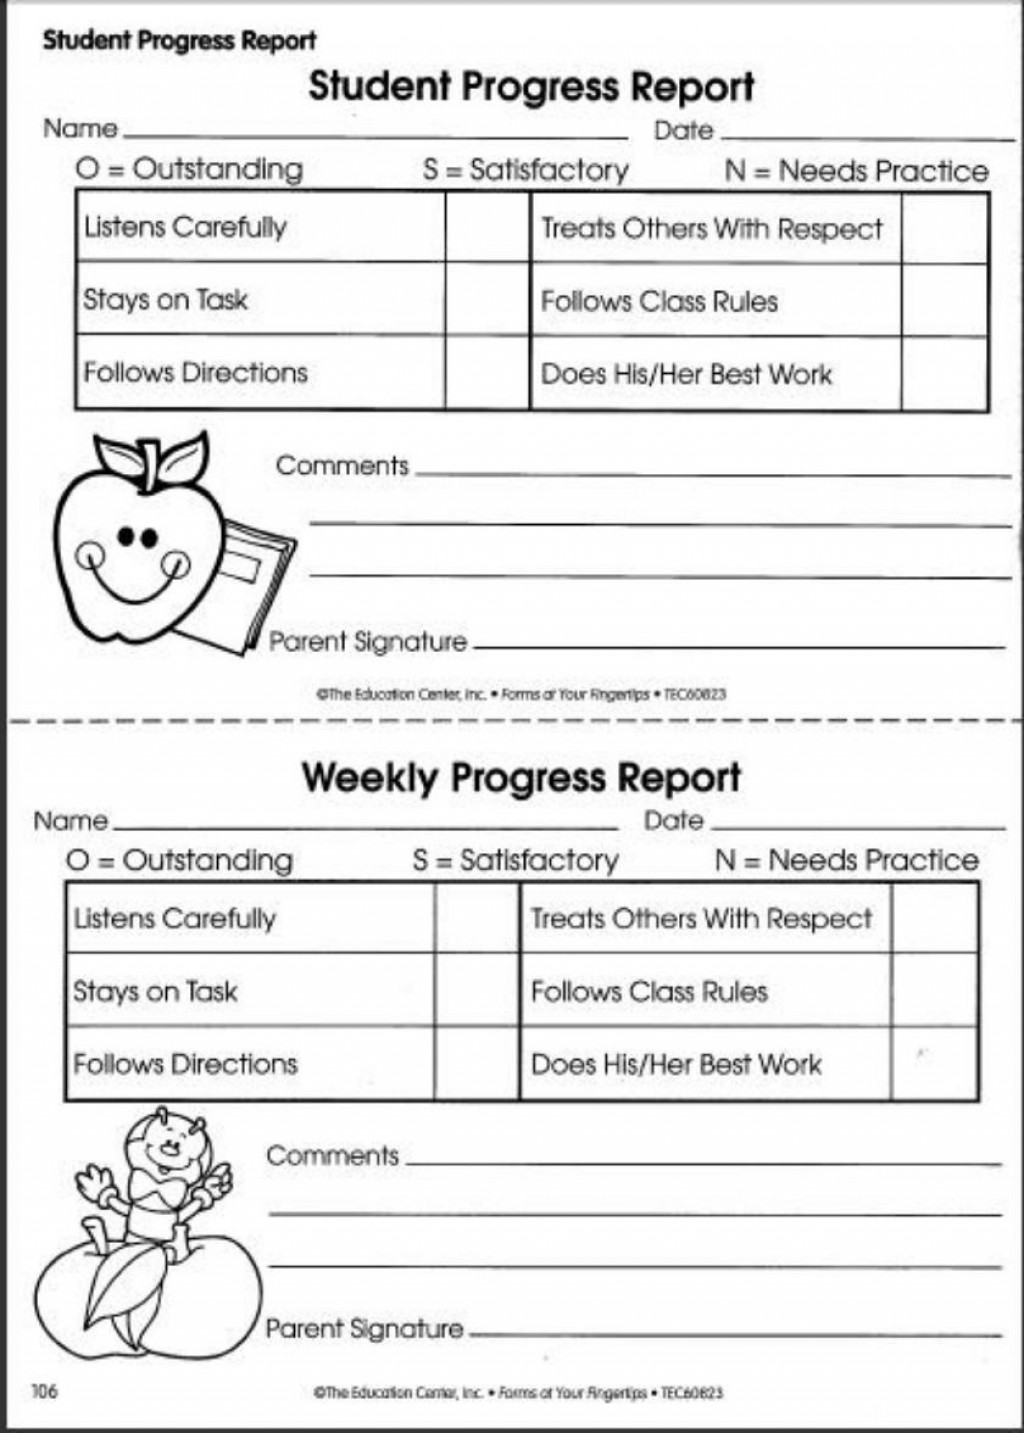 007 Impressive Preschool Daily Report Template Image  Form Baby SheetLarge